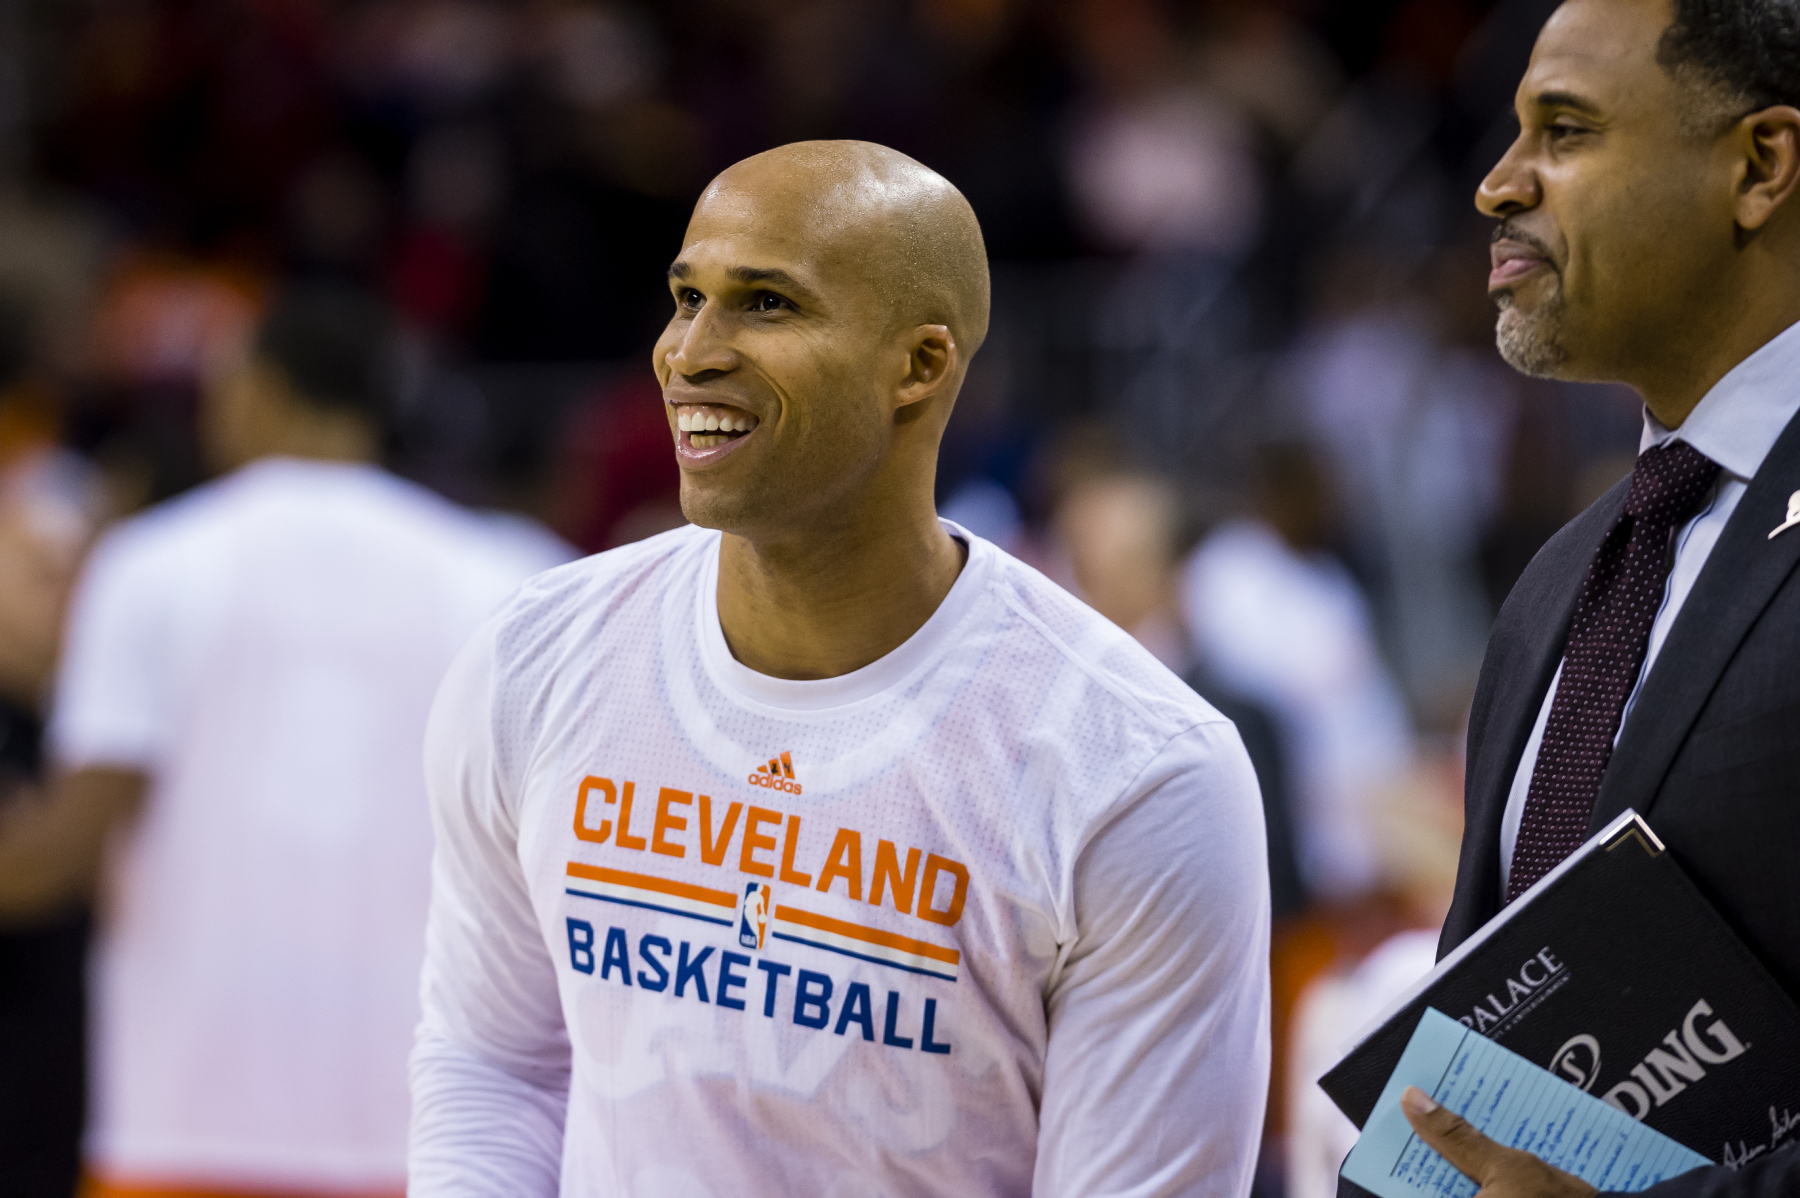 Giannis Antetokounmpo and the Bucks have struggled in the playoffs the past two seasons. Now, Richard Jefferson is calling him out.